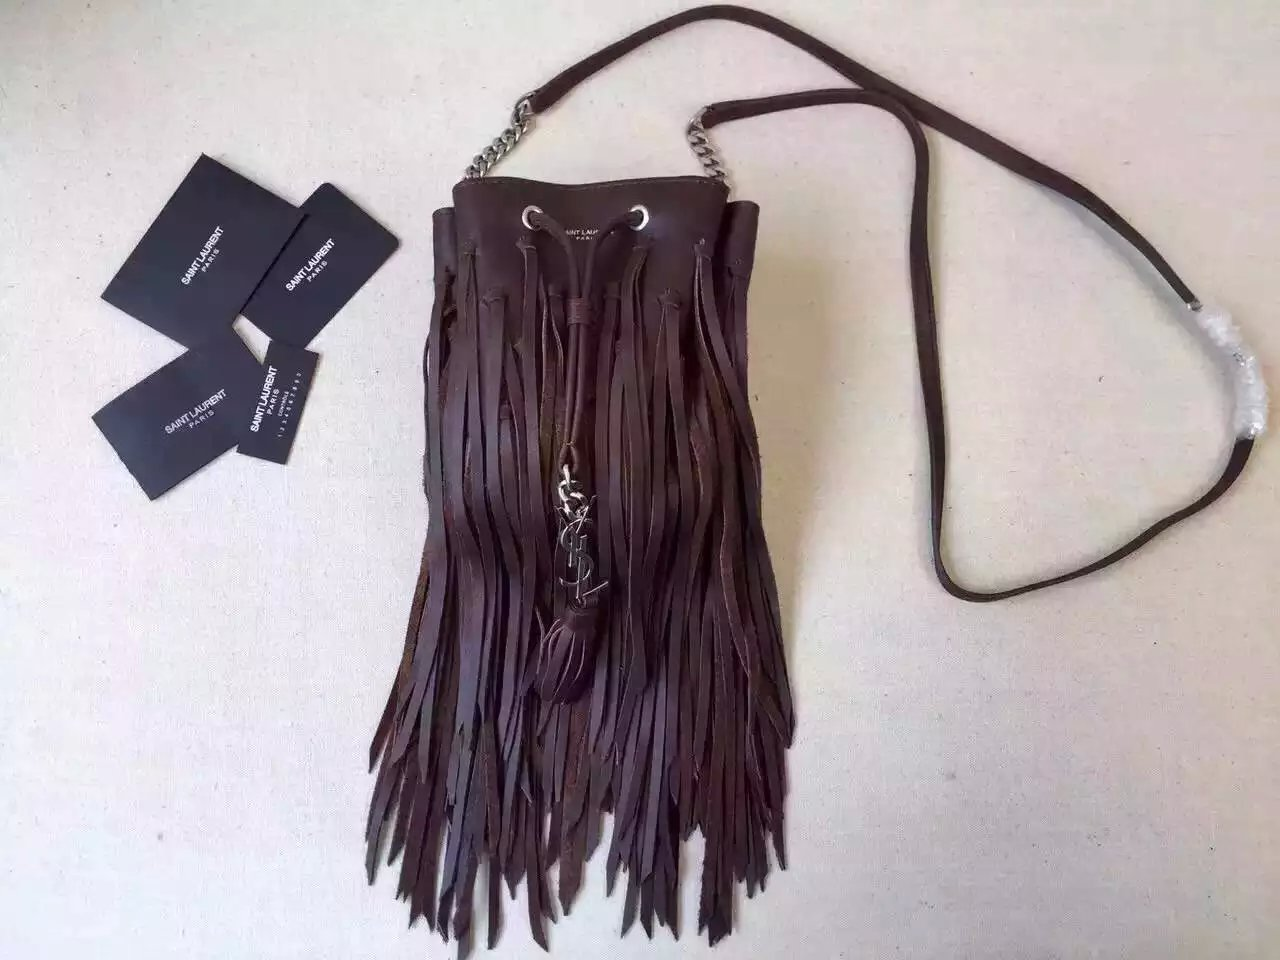 2015 New Saint Laurent Bag Cheap Sale-Saint Laurent Emmanuelle Fringed Bucket Bag in Bordeaux Leather